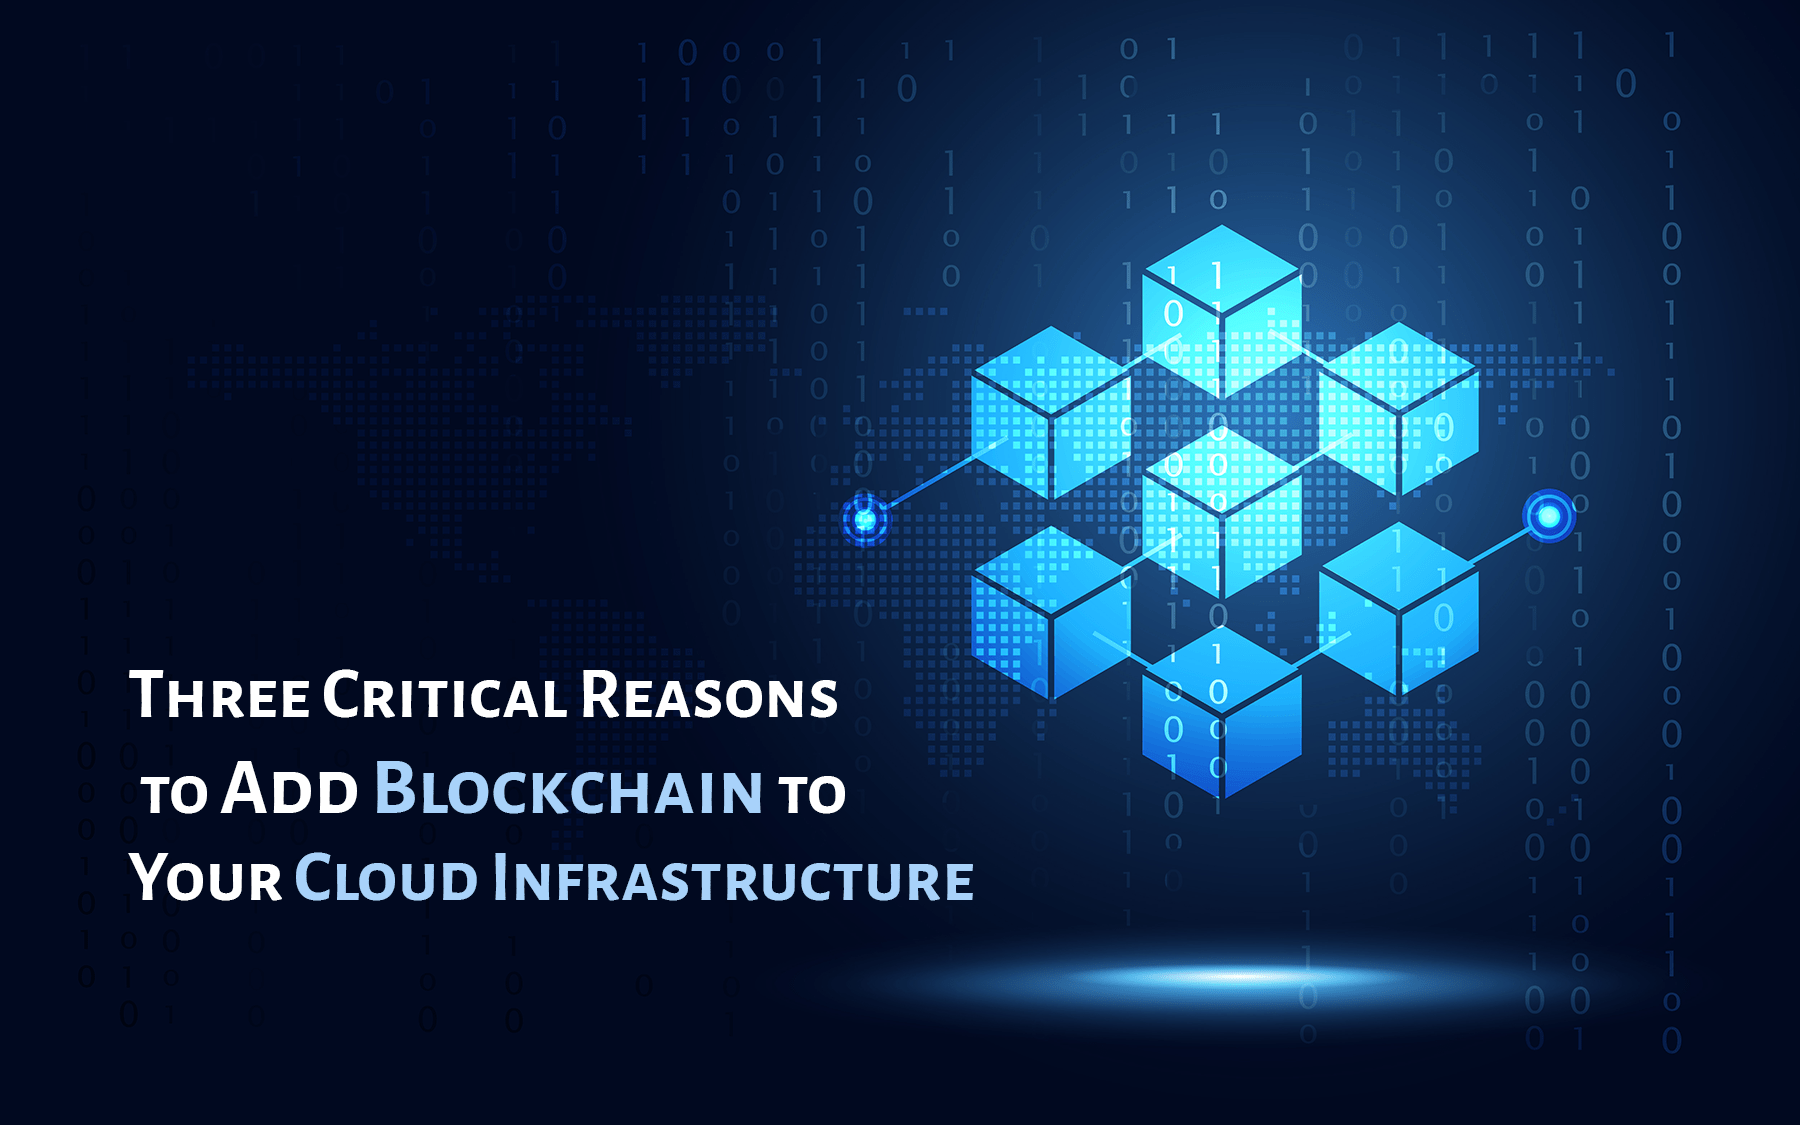 Add Blockchain to Your Cloud Infrastructure